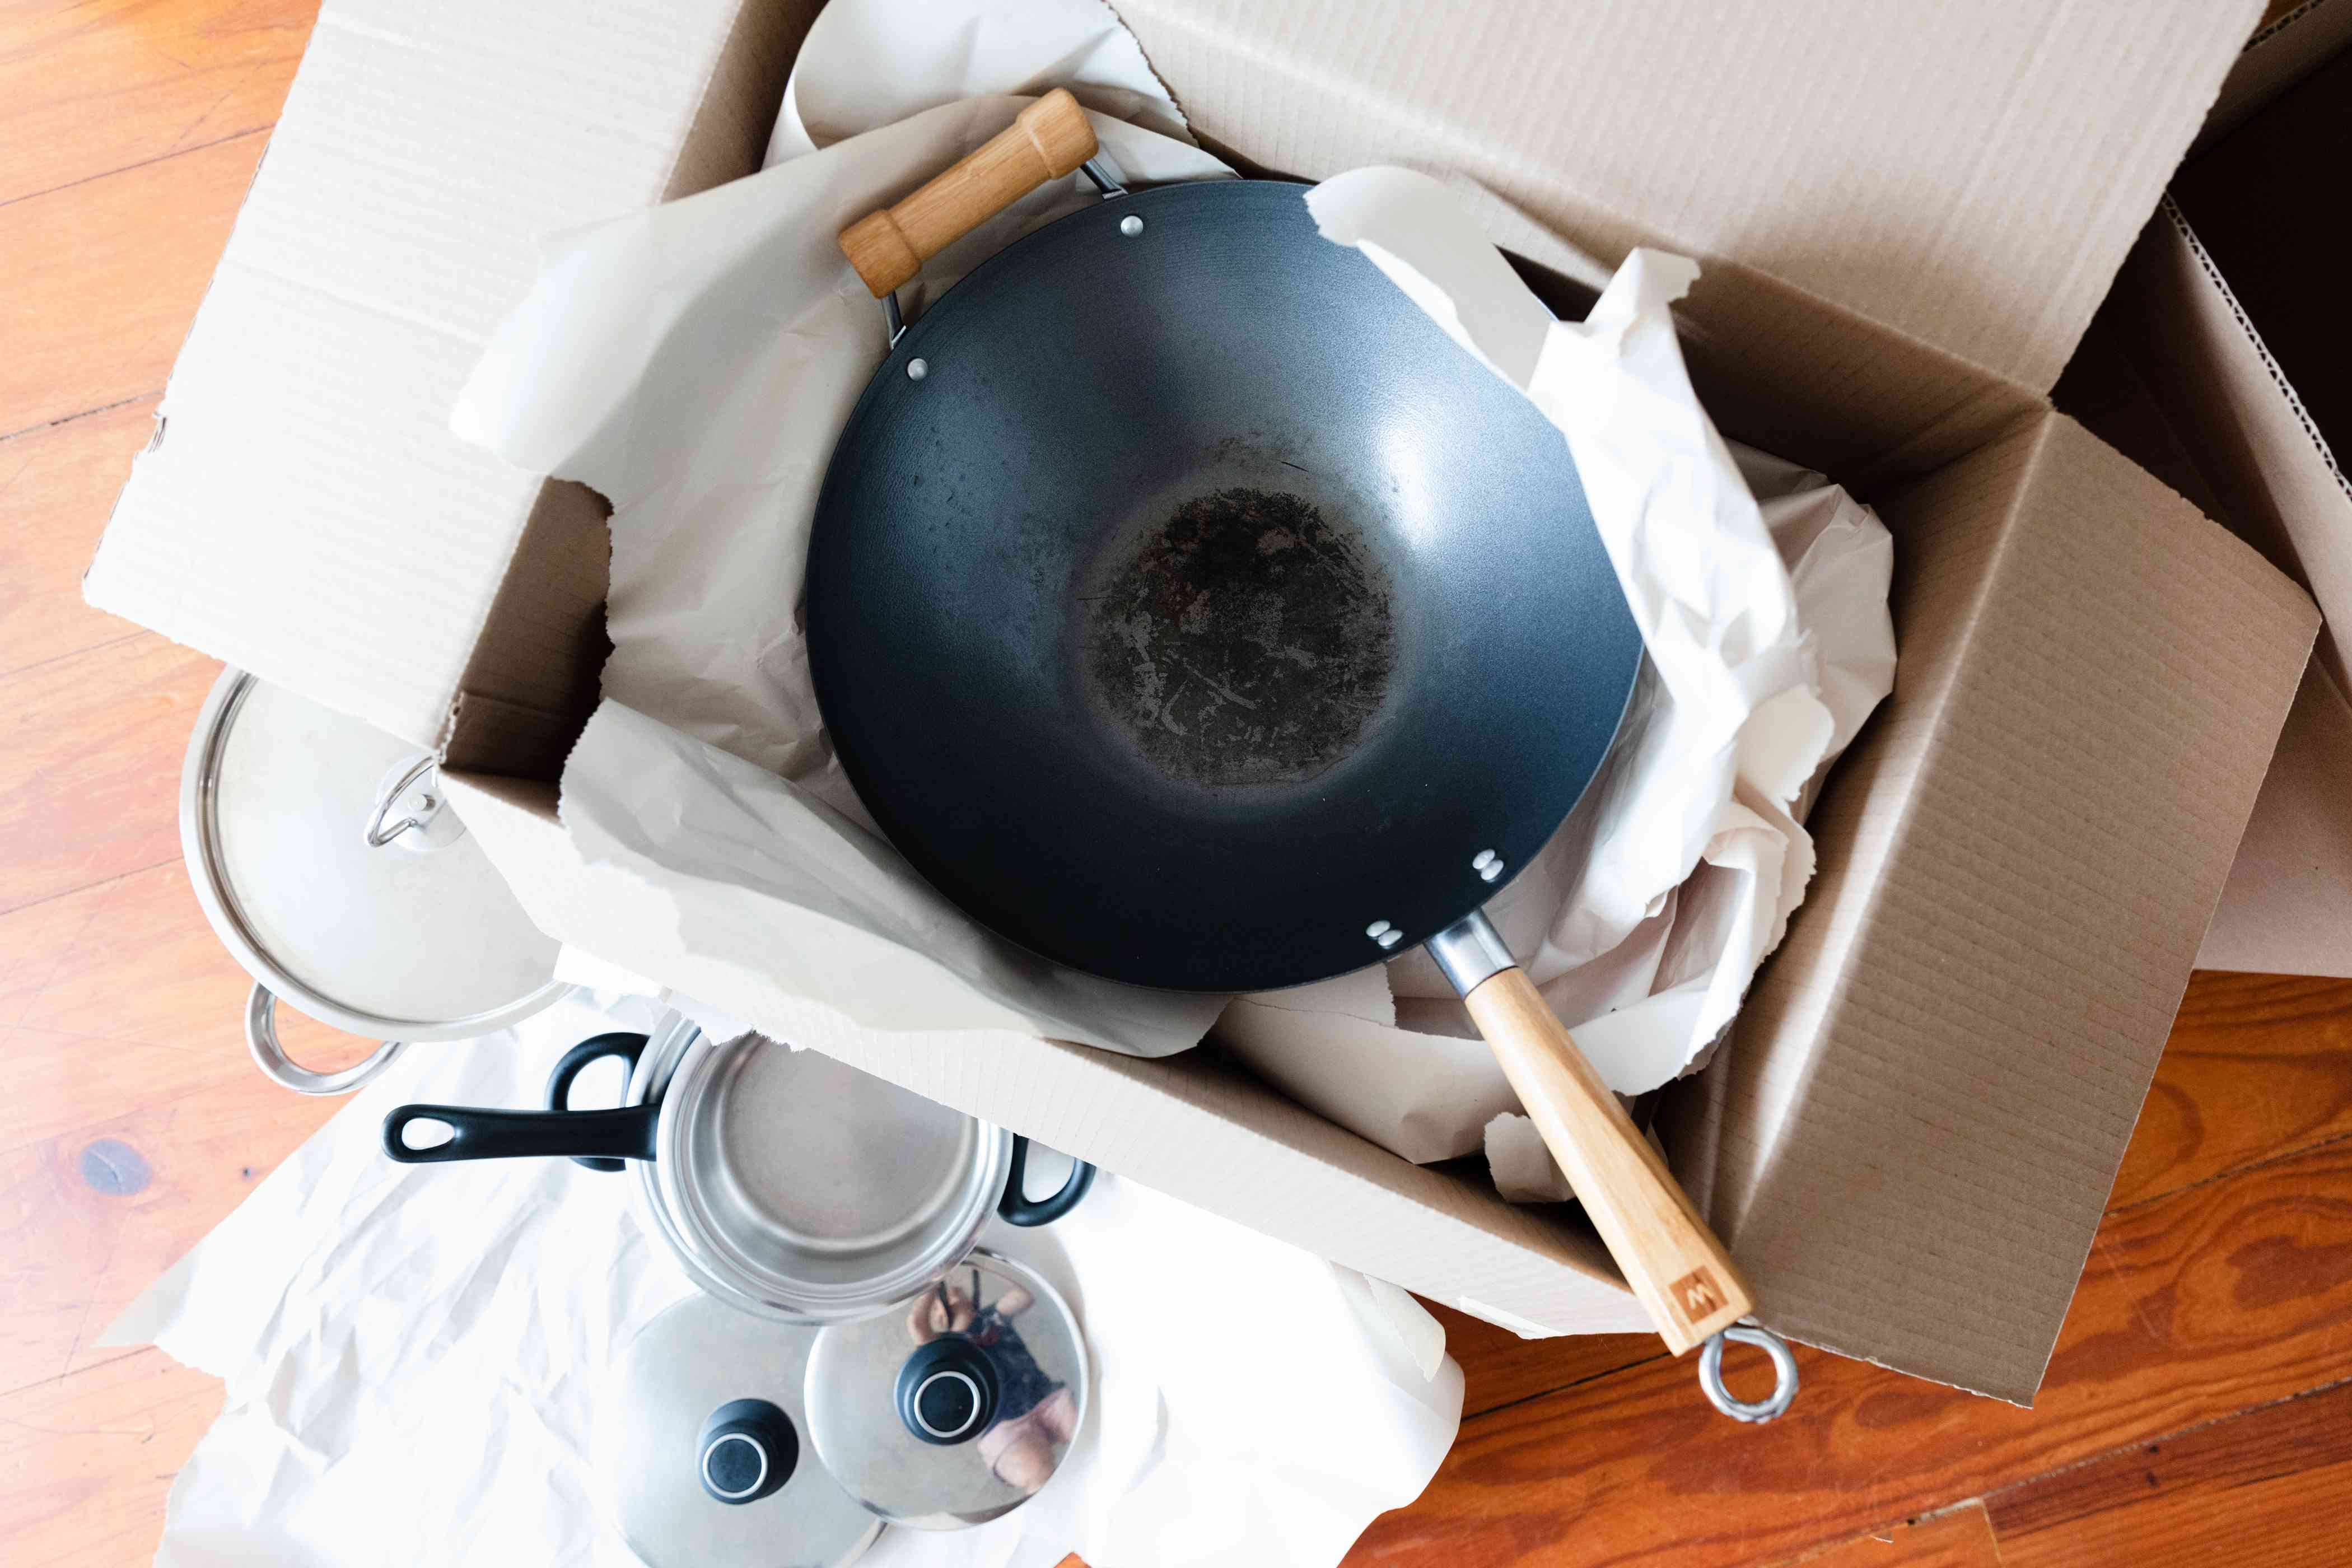 packing up pots and pans